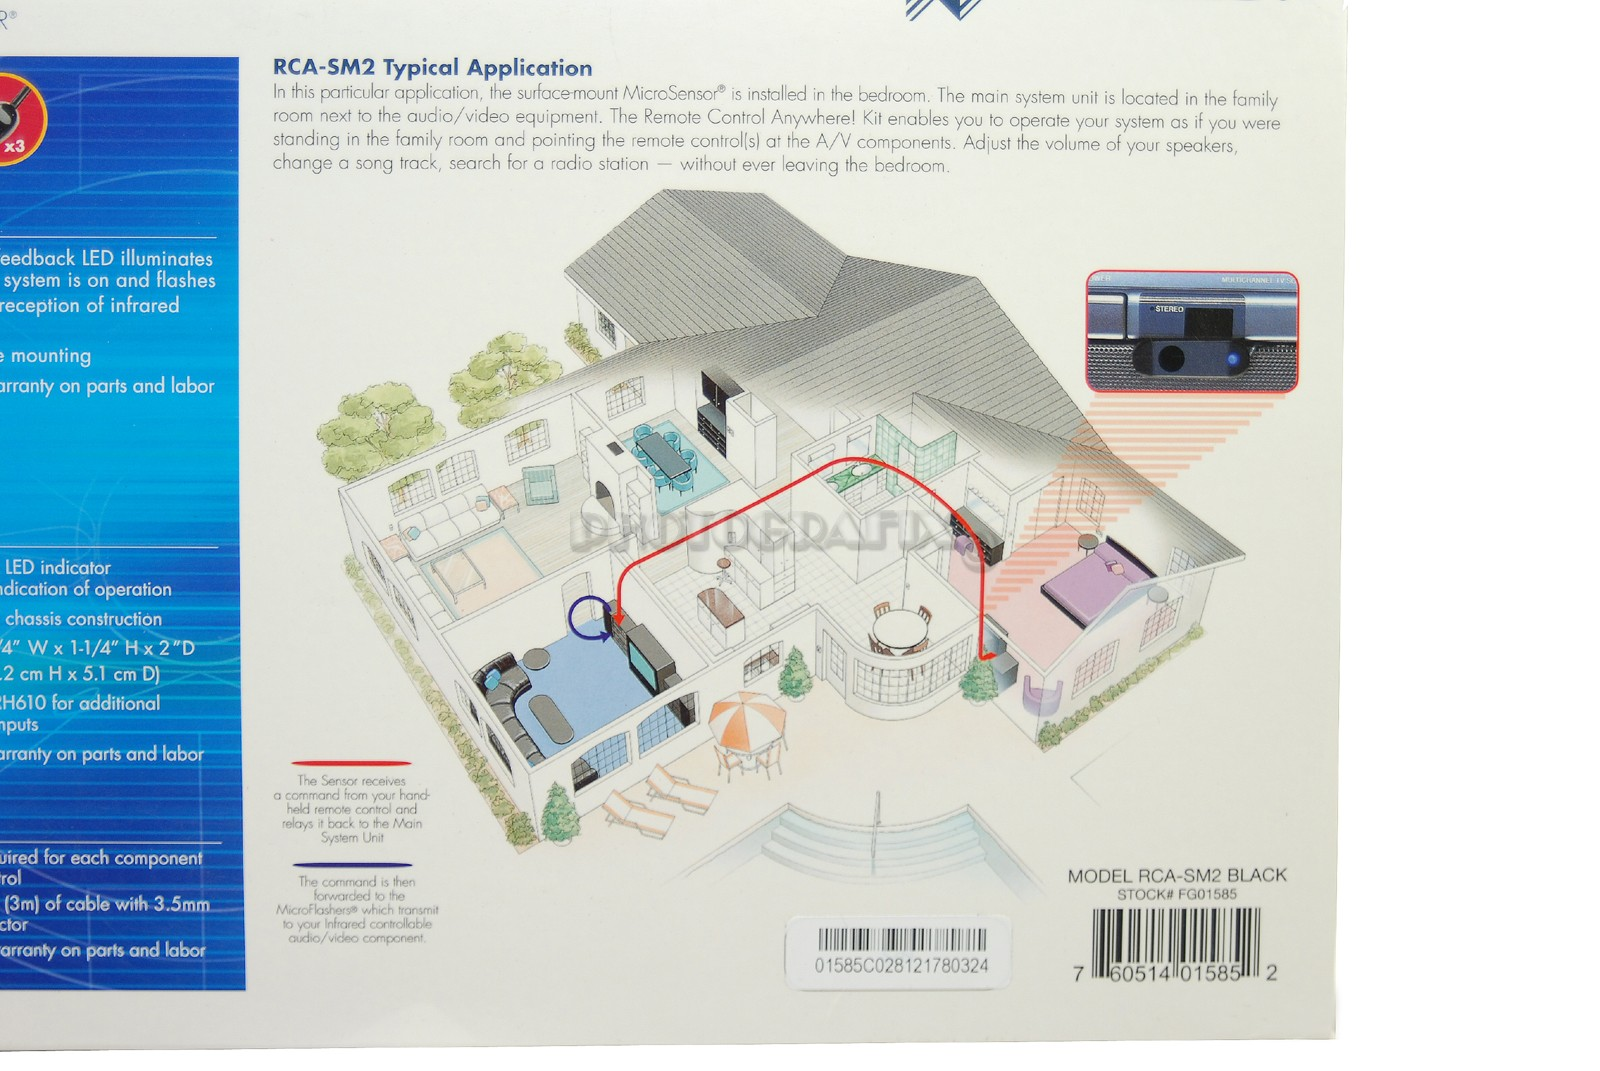 medium resolution of niles rca sm2 remote control anywhere kit with surface mount ir microsensor niles rca sm2 wiring diagram